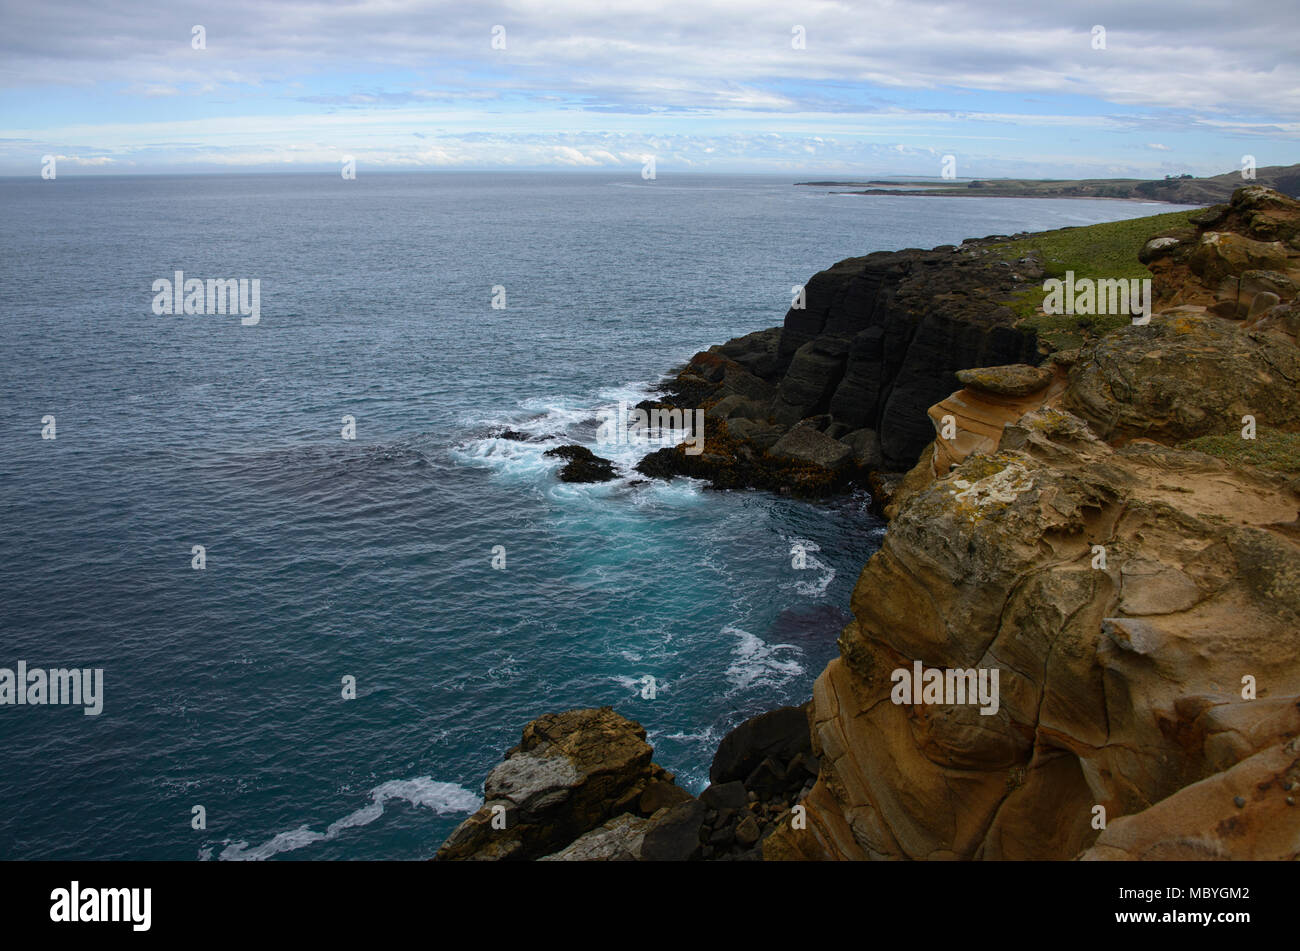 Slope Point, the South Island's most southern destination, Catlins, New Zealand - Stock Image